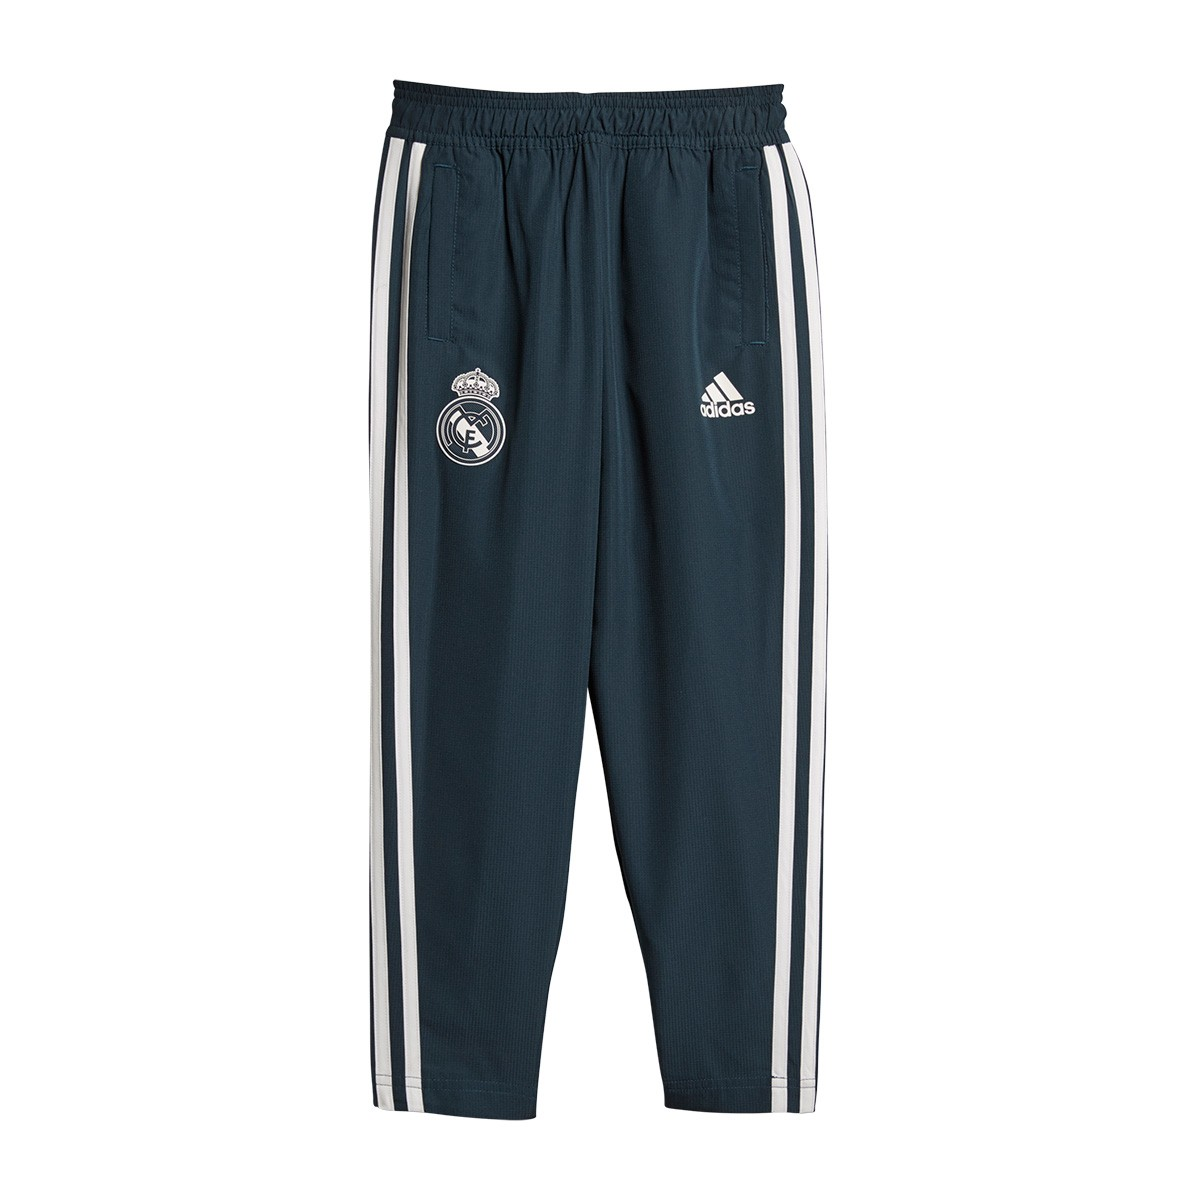 chandal real madrid modelos